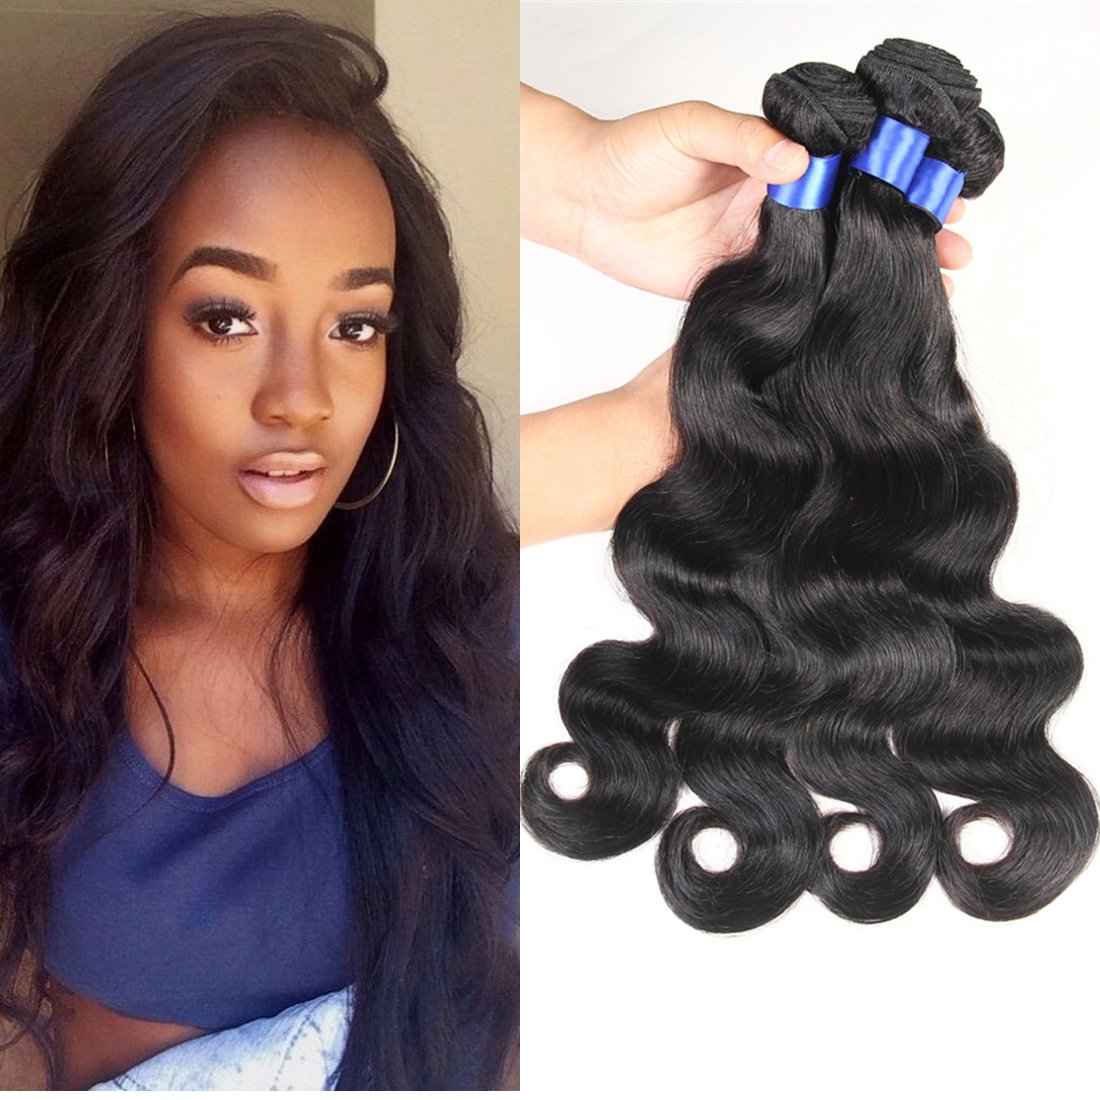 Amazon hc diva body weave brazilian virgin hair 100 amazon hc diva body weave brazilian virgin hair 100 unprocessed human hair 4 bundles brazilian hair bundles real human hair extensions 1b natural pmusecretfo Images